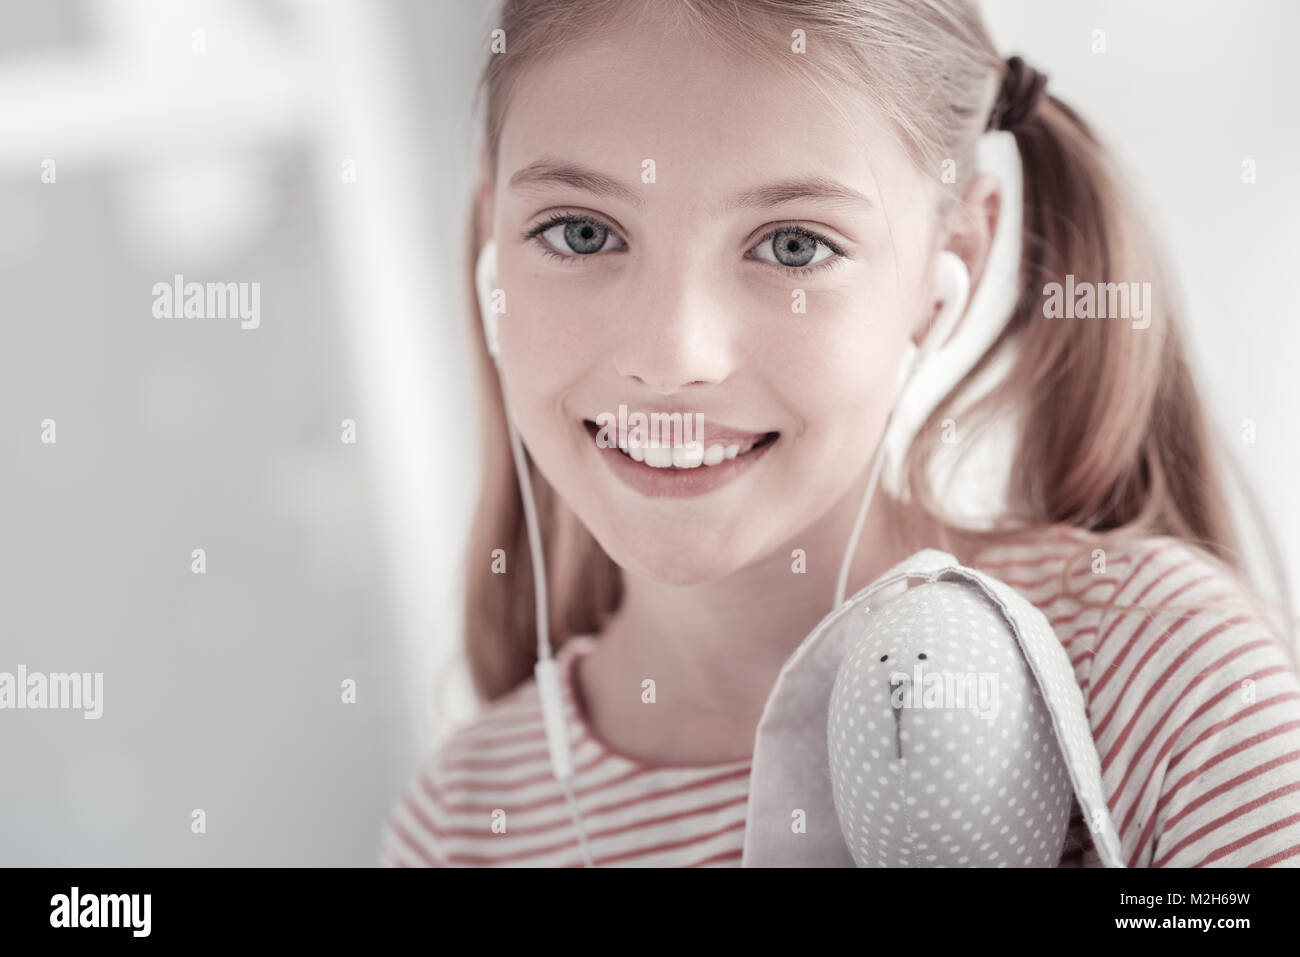 Inspired girl with headset and her toy - Stock Image